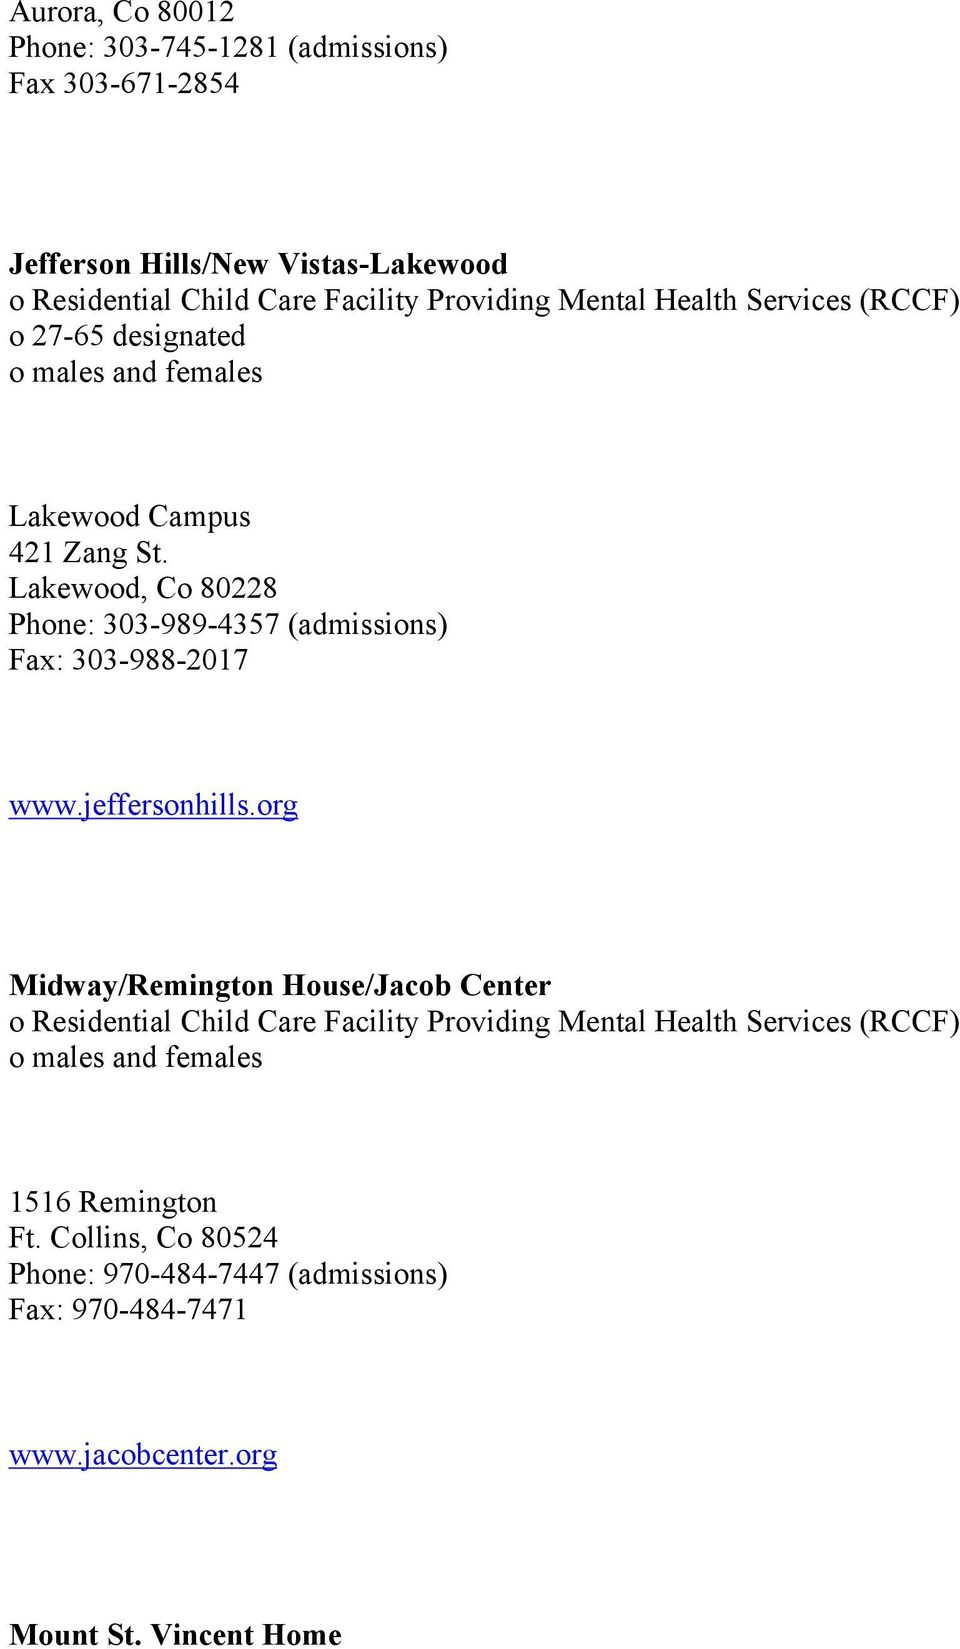 Residential Facilities Utilizing Mental Health Services For Children